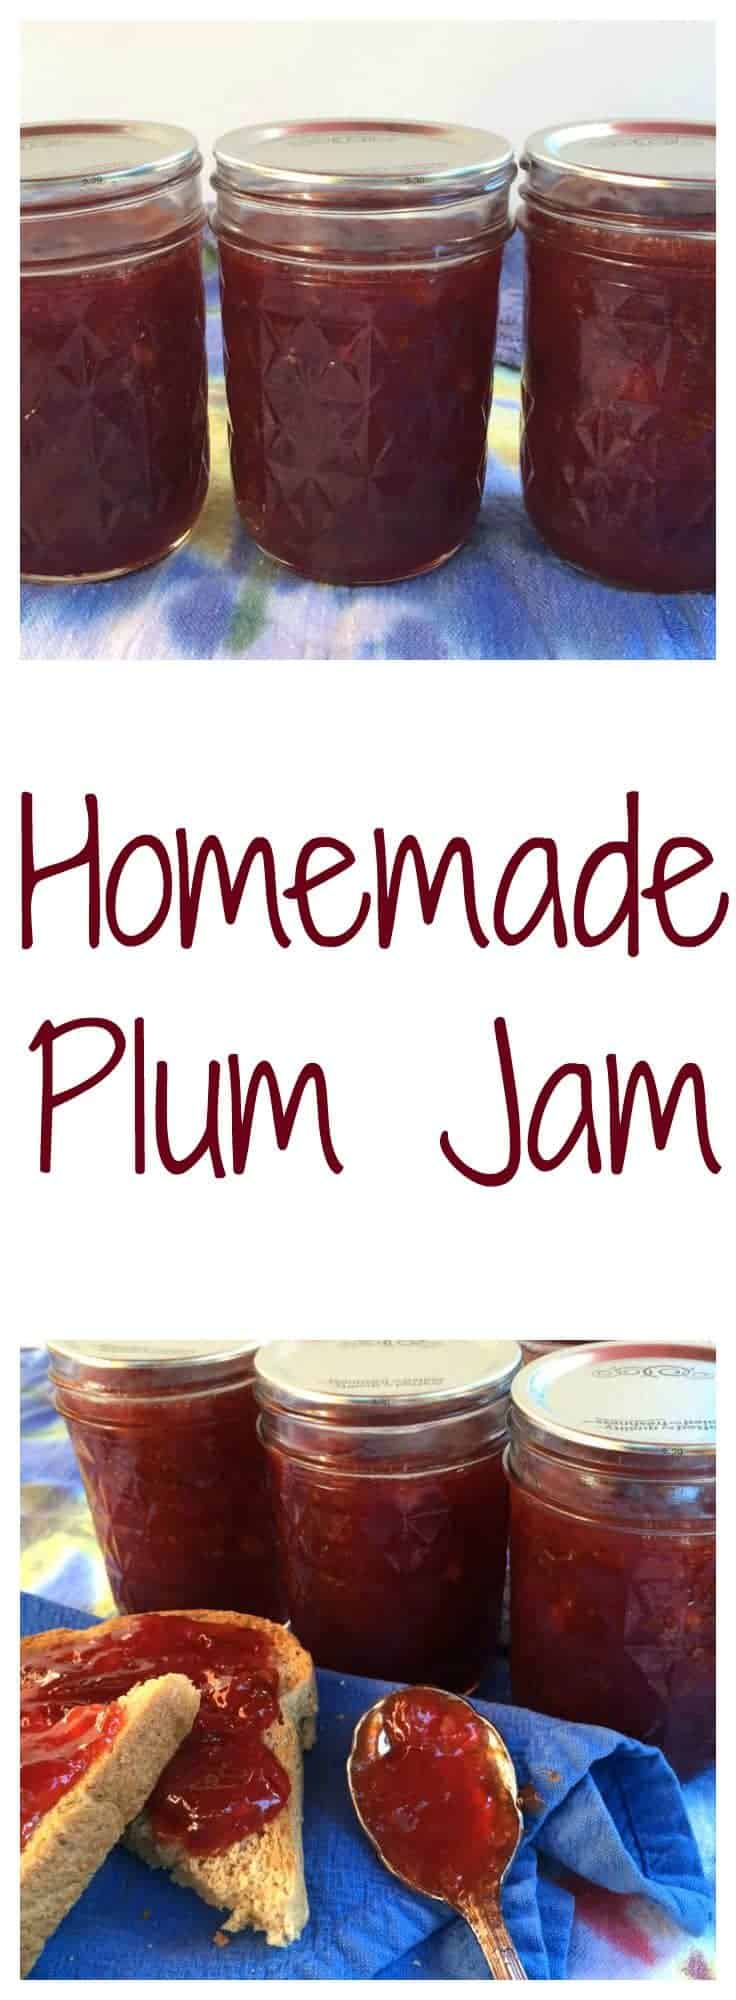 Plum jam made with just two ingredients: plums and sugar